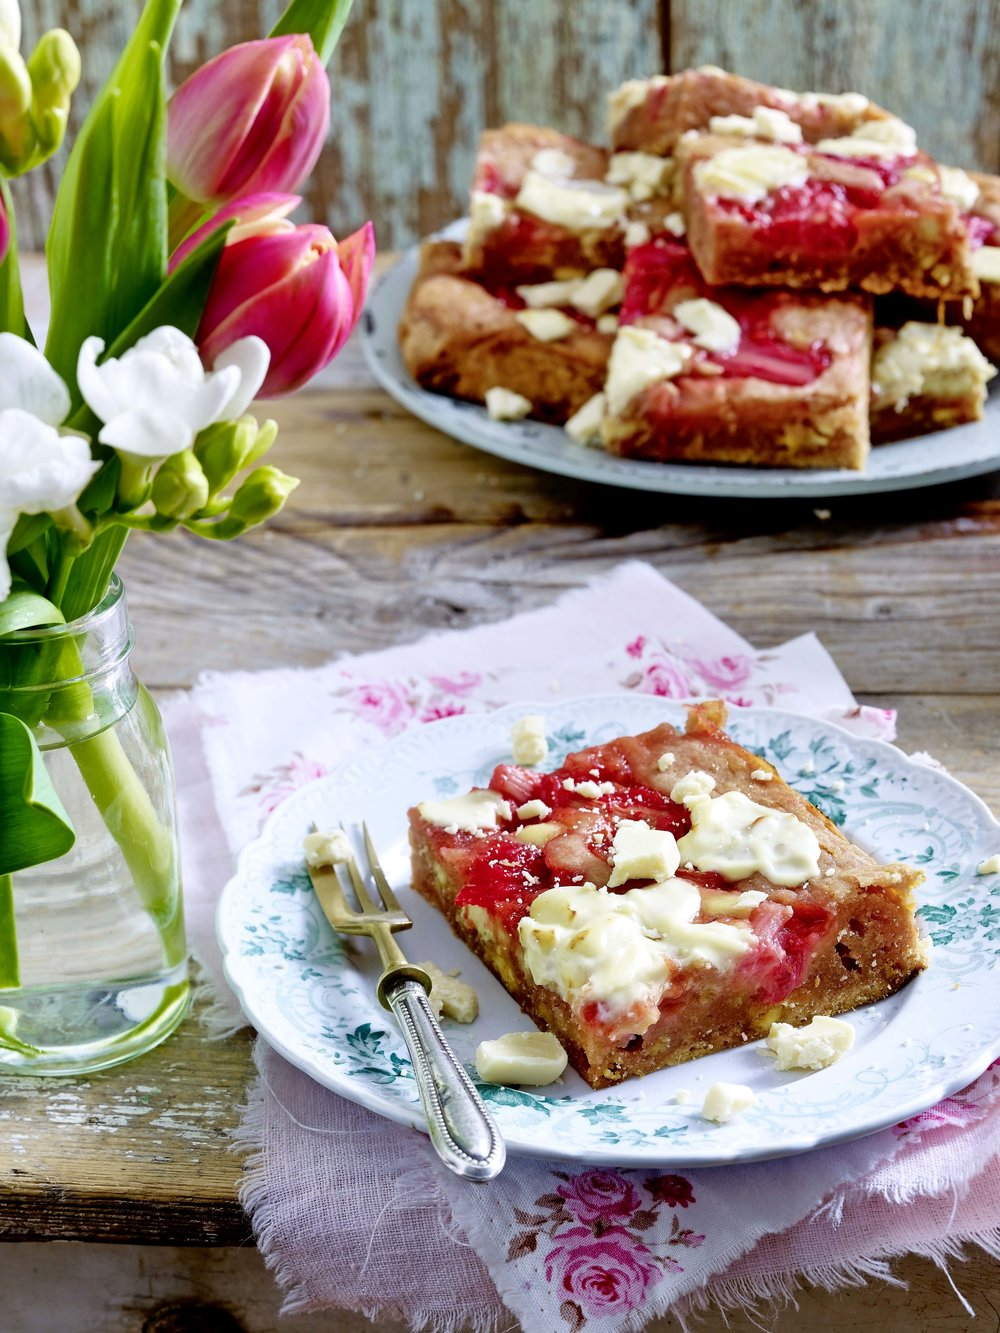 A slice of rhubarb and white chocolate bake, from a recipe in the March 2018 issue of LandScape